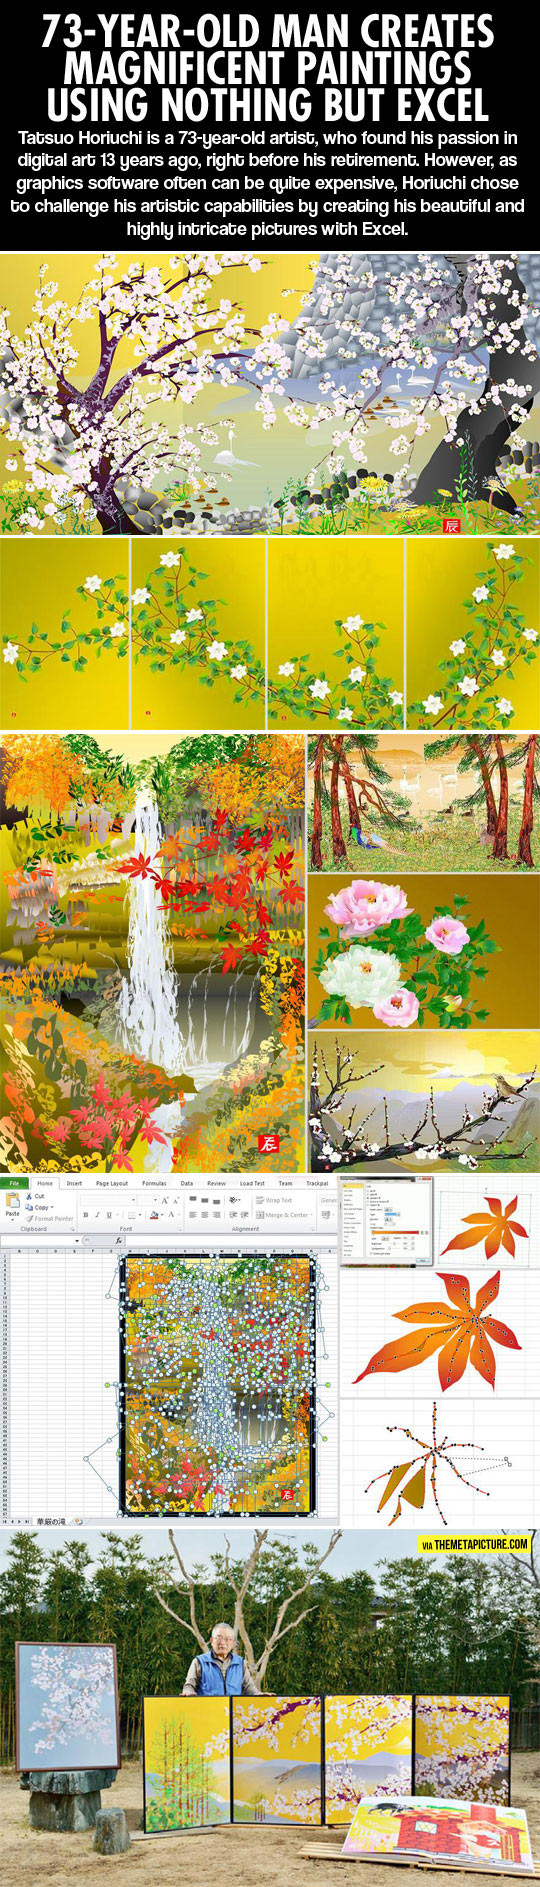 Magnificent Paintings Using Excel